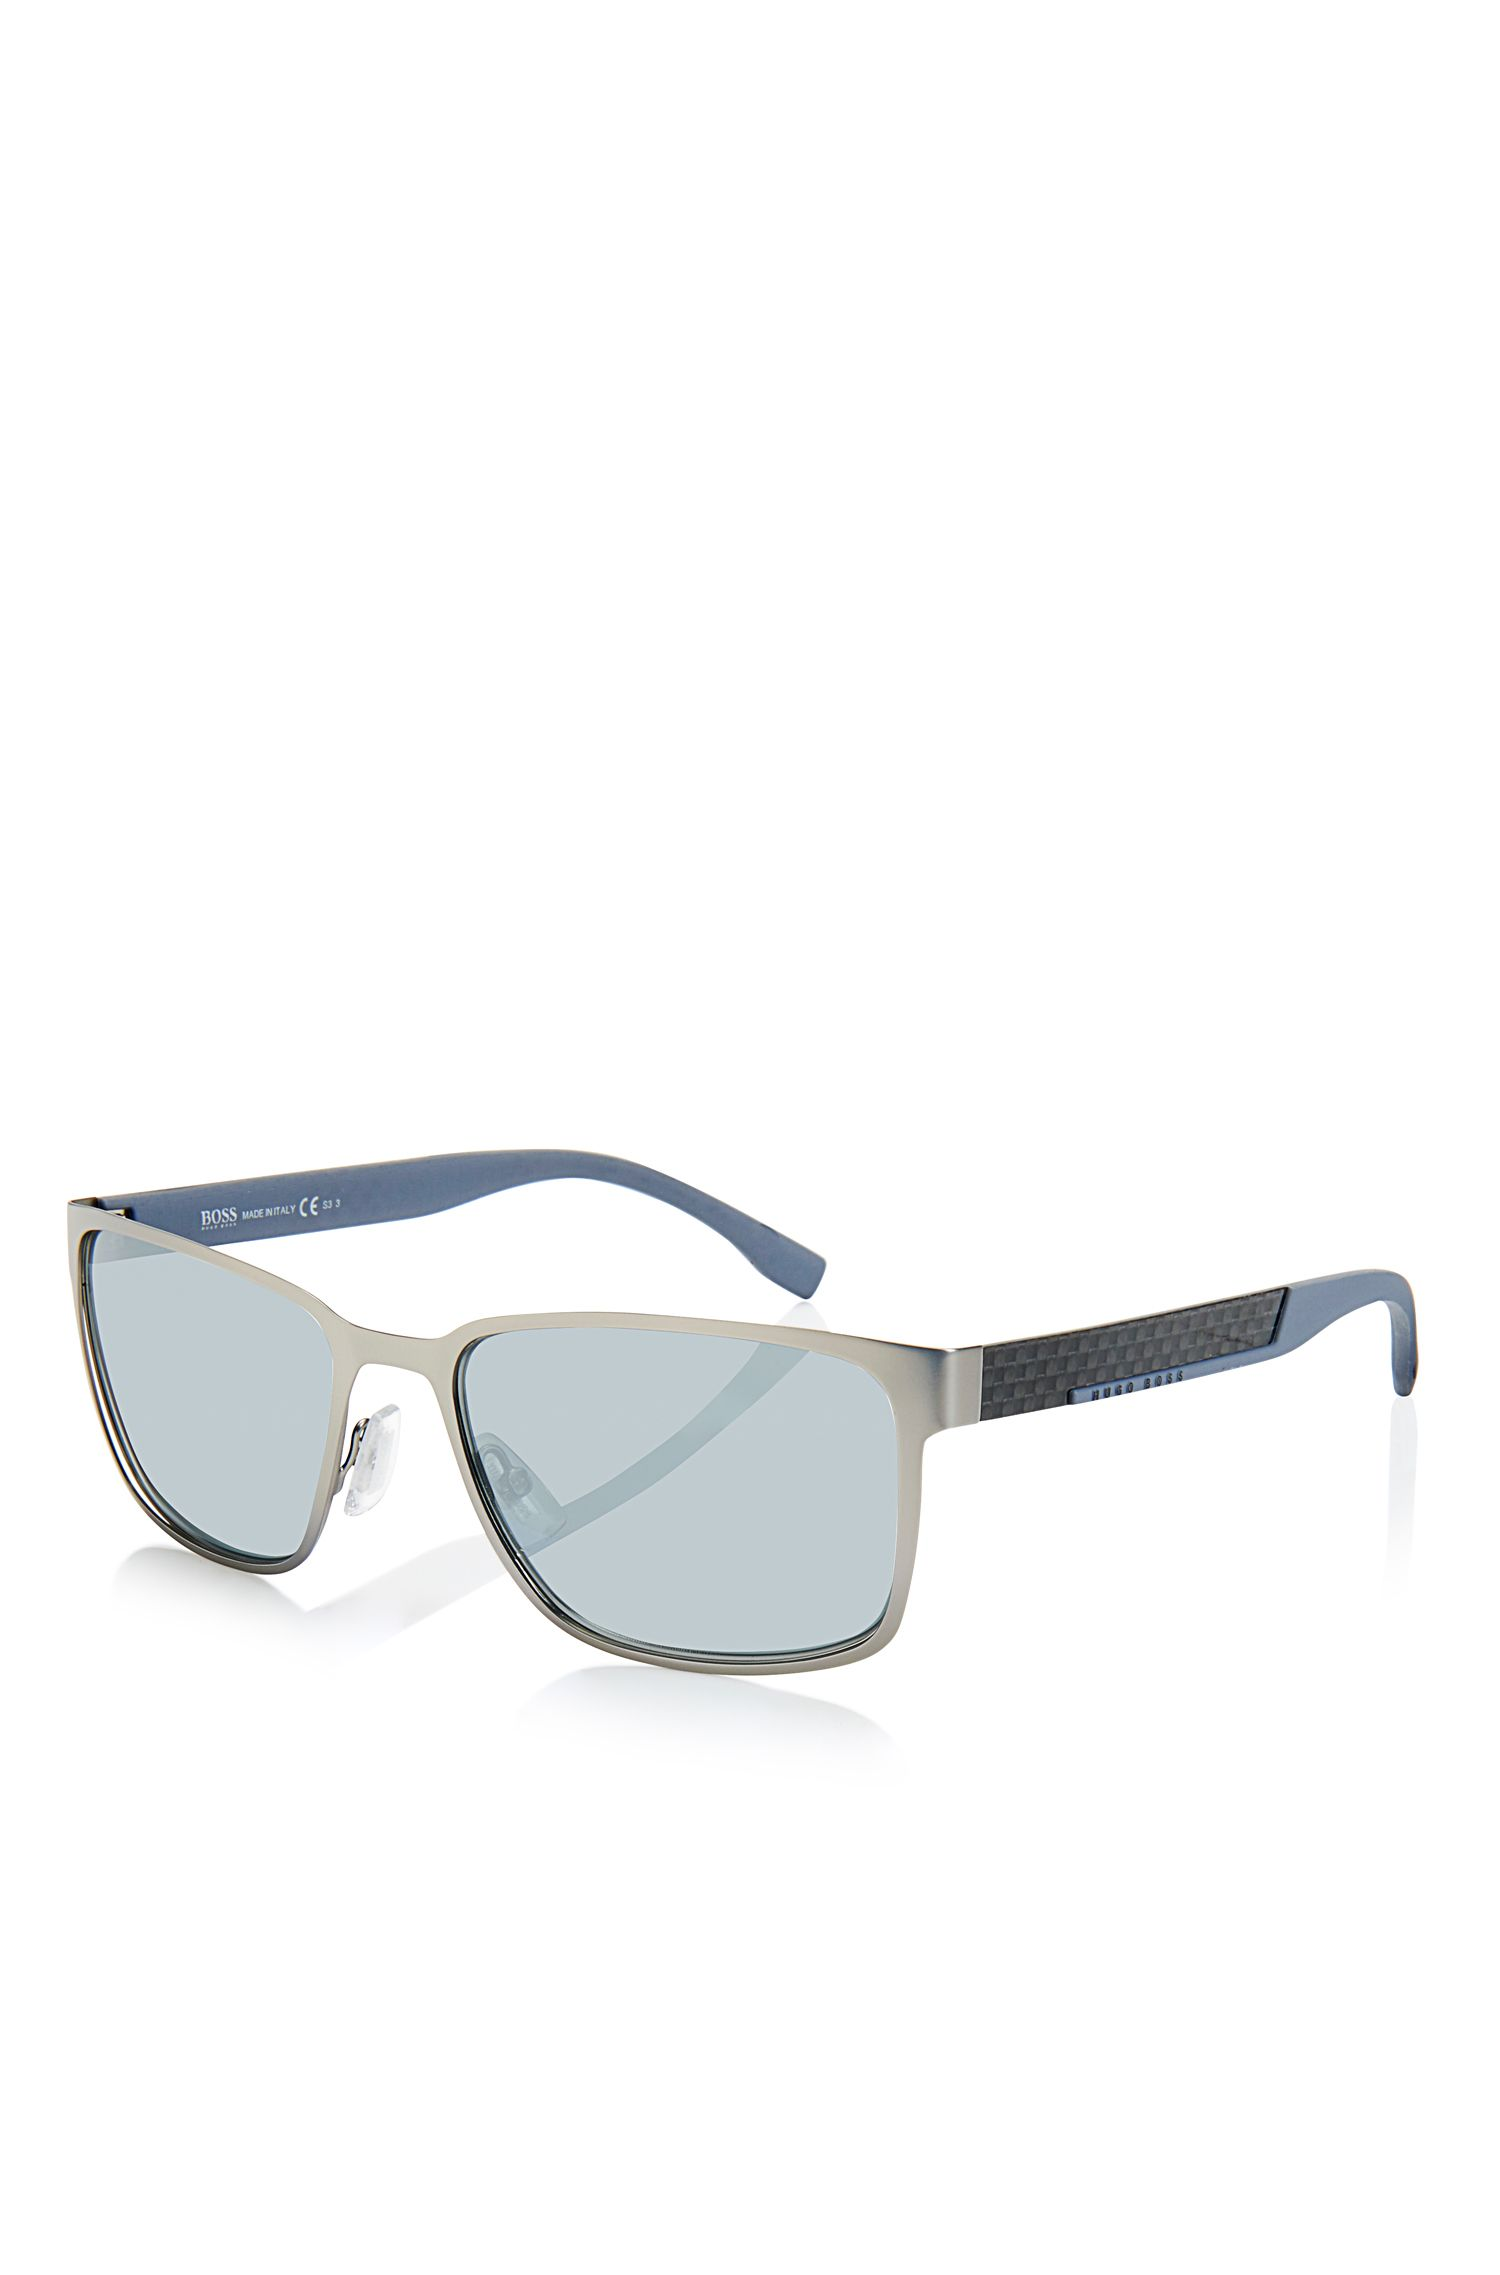 Steel and Carbon Black Mirror Lens Sunglasses | BOSS 0638